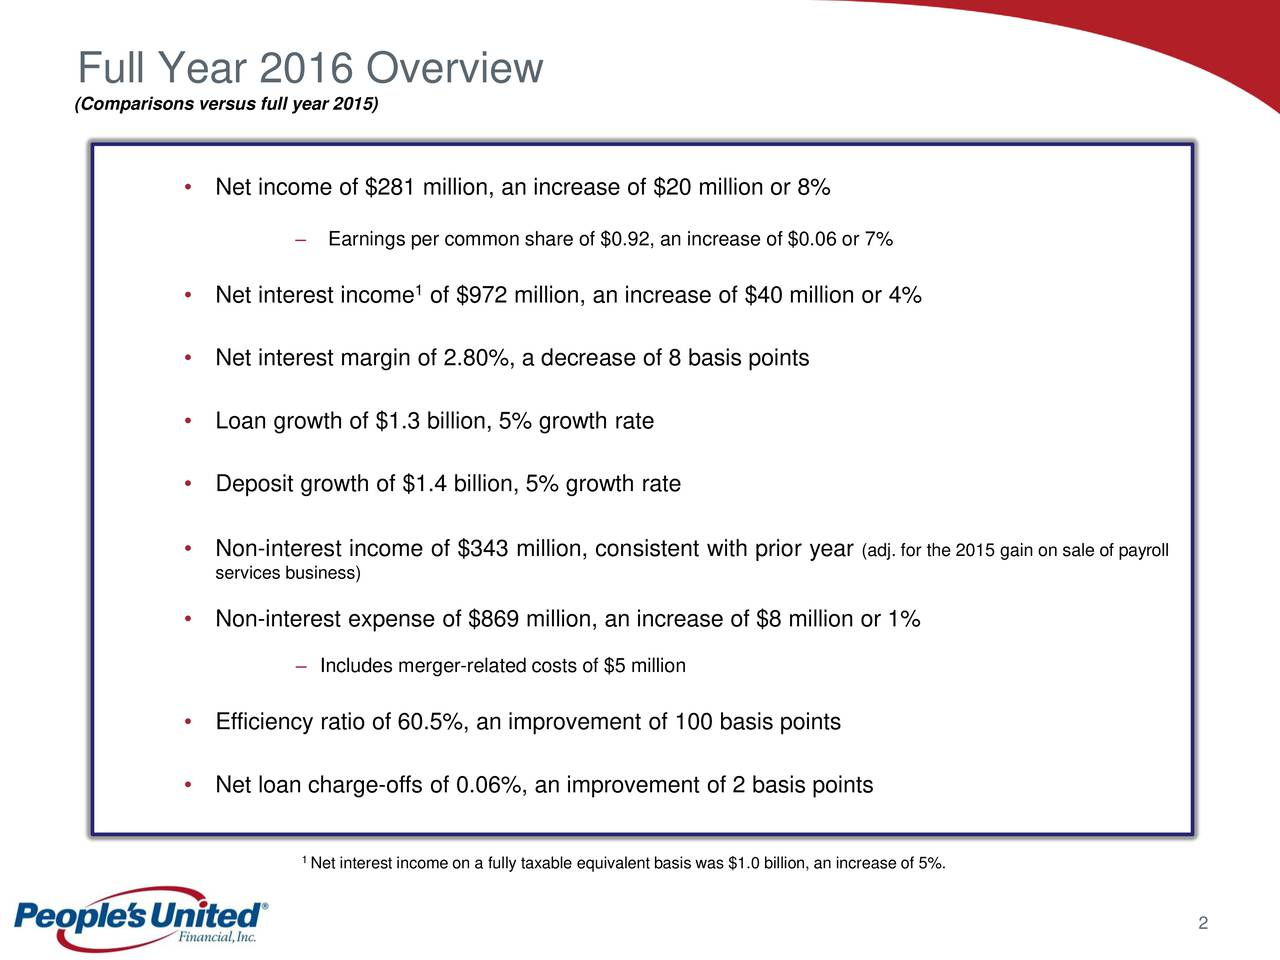 (Comparisons versus full year 2015) Net income of $281 million, an increase of $20 million or 8% Earnings per common share of $0.92, an increase of $0.06 or 7% 1 Net interest income of $972 million, an increase of $40 million or 4% Net interest margin of 2.80%, a decrease of 8 basis points Loan growth of $1.3 billion, 5% growth rate Deposit growth of $1.4 billion, 5% growth rate Non-interest income of $343 million, consistent with prior year (adj. for the 2015 gain on sale of payroll services business) Non-interest expense of $869 million, an increase of $8 million or 1% Includes merger-related costs of $5 million Efficiency ratio of 60.5%, an improvement of 100 basis points Net loan charge-offs of 0.06%, an improvement of 2 basis points 1 Net interest income on a fully taxable equivalent basis was $1.0 billion, an increase of 5%. 2